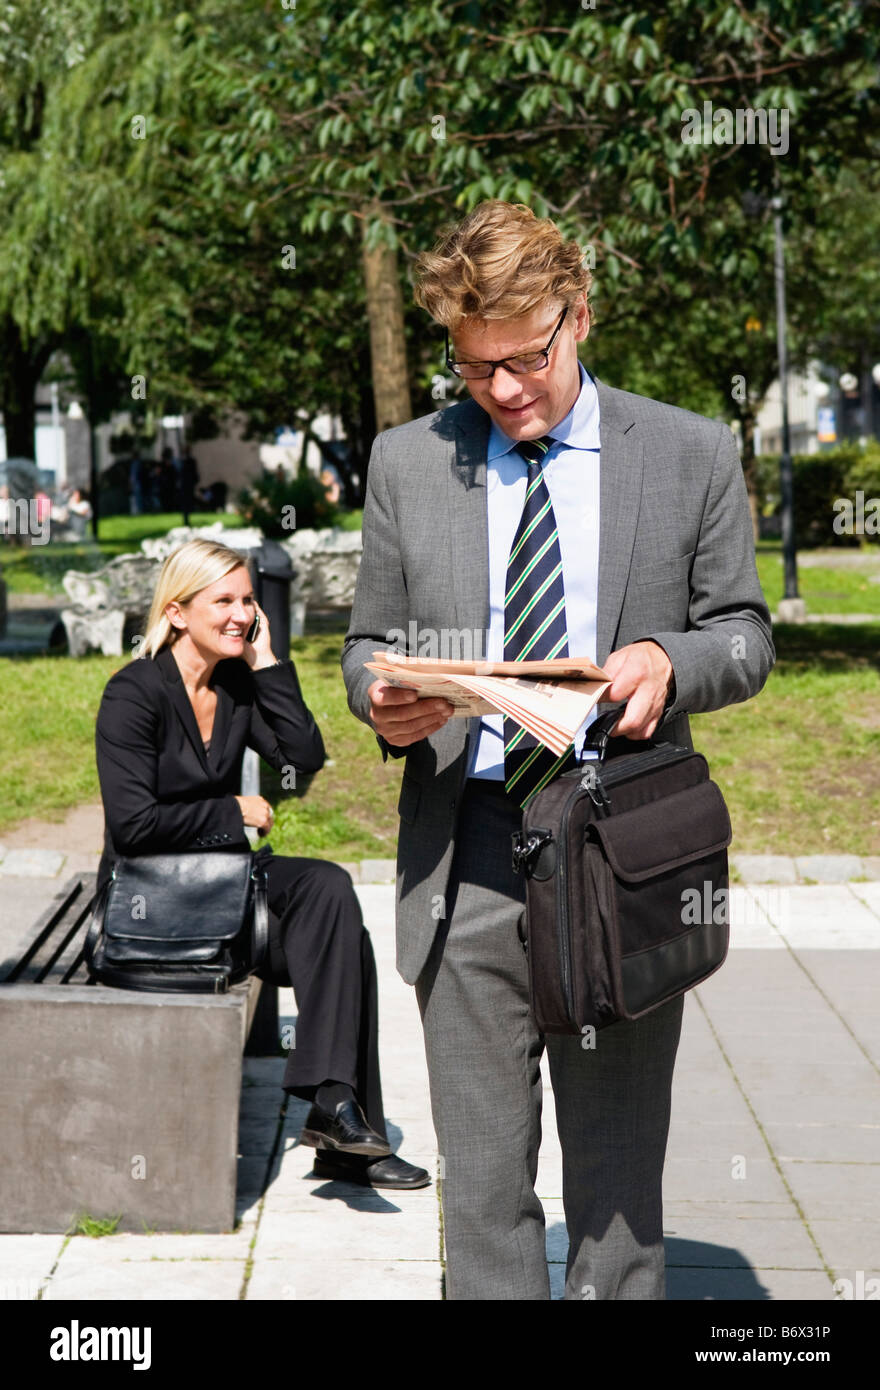 Businessman and businesswoman in park Stock Photo